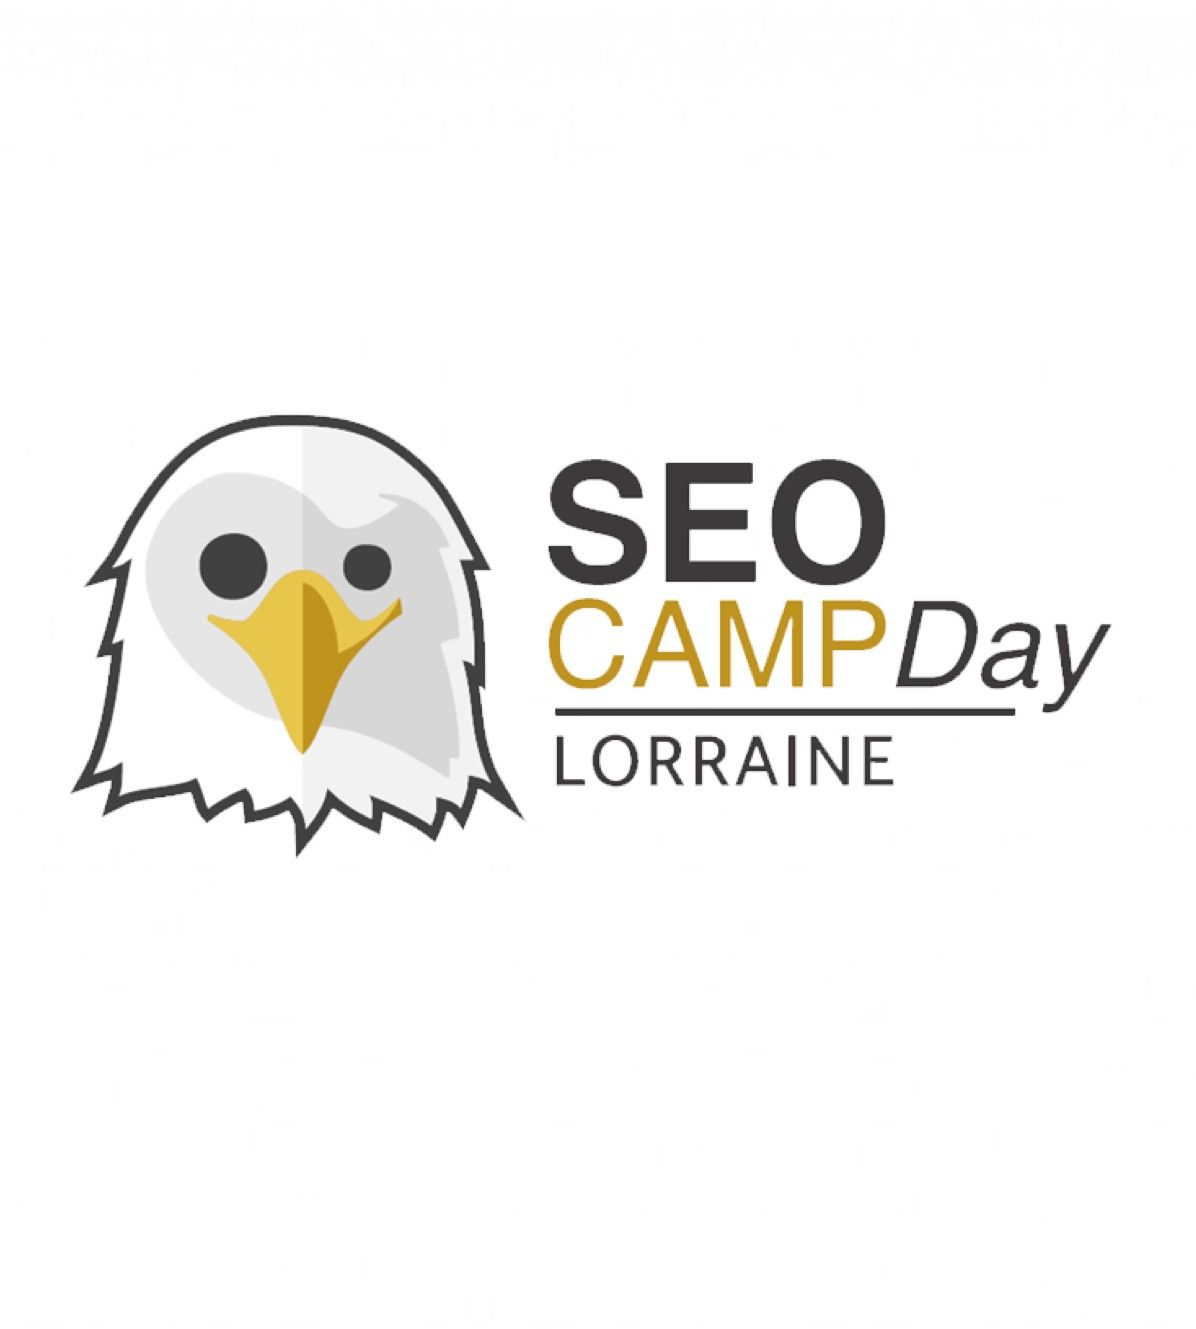 Seo Camp Day Lorraine - Nicolas Evenou 1200